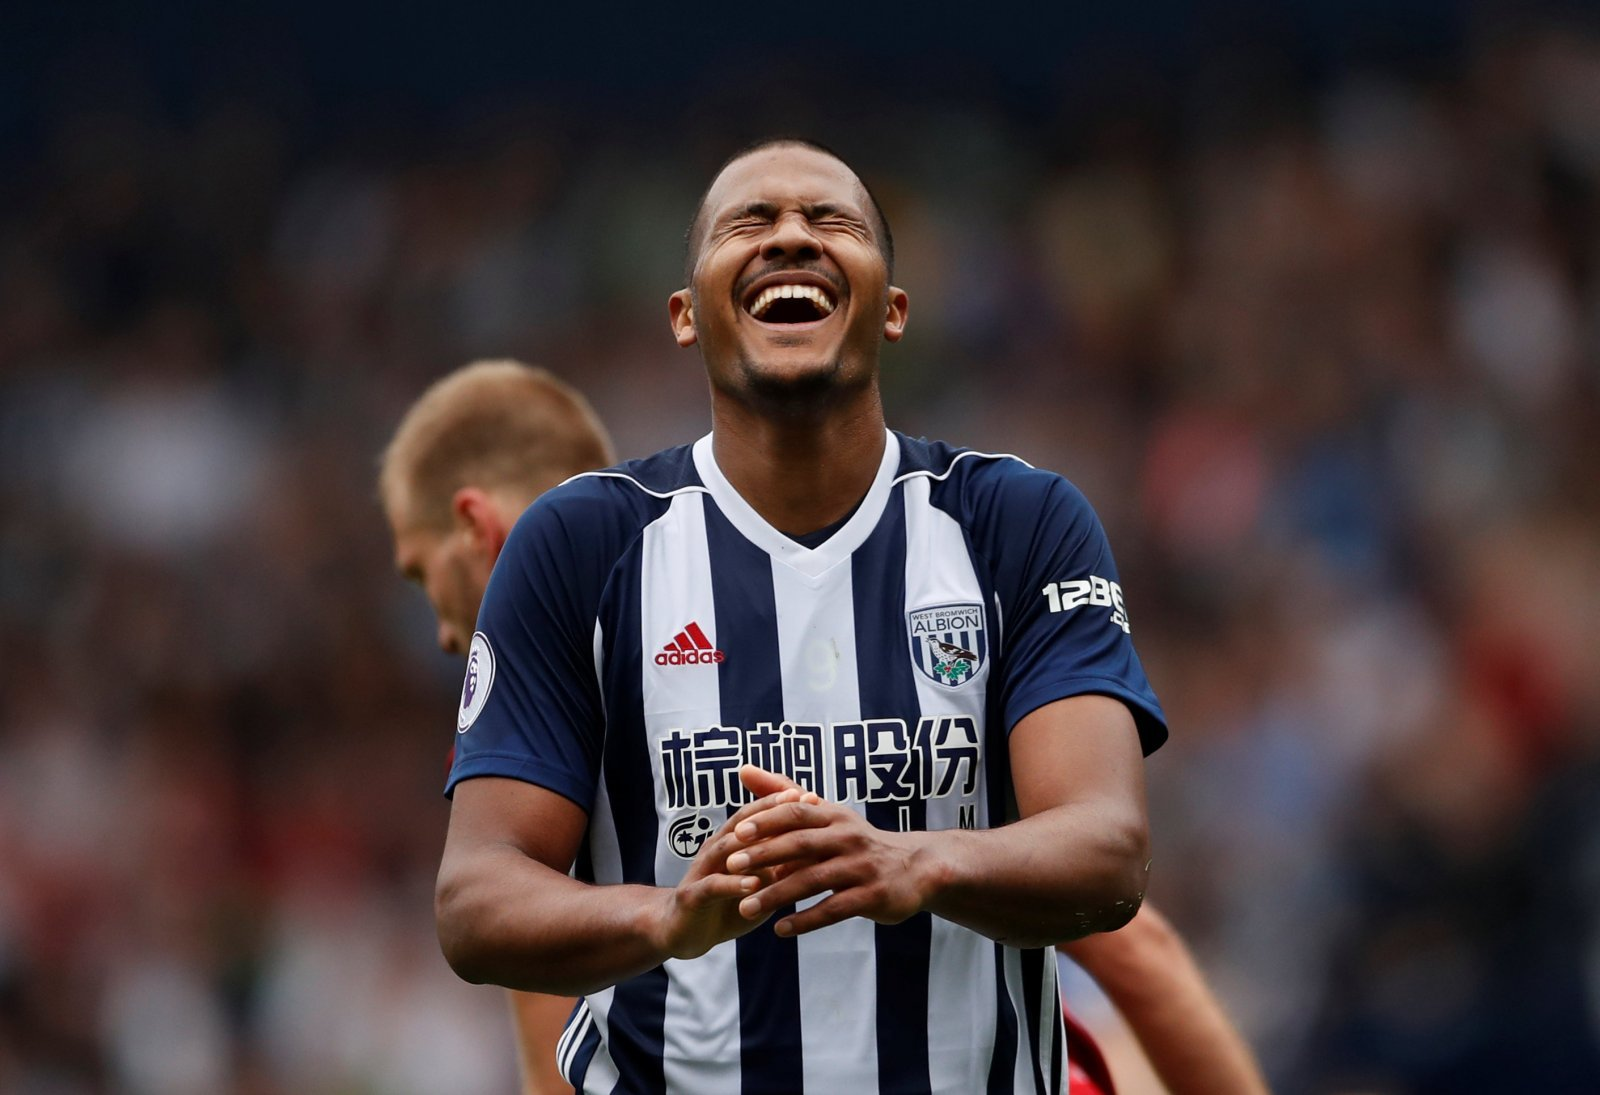 Rafa Benitez suffers transfer blow as Salomon Rondon's contract is extended